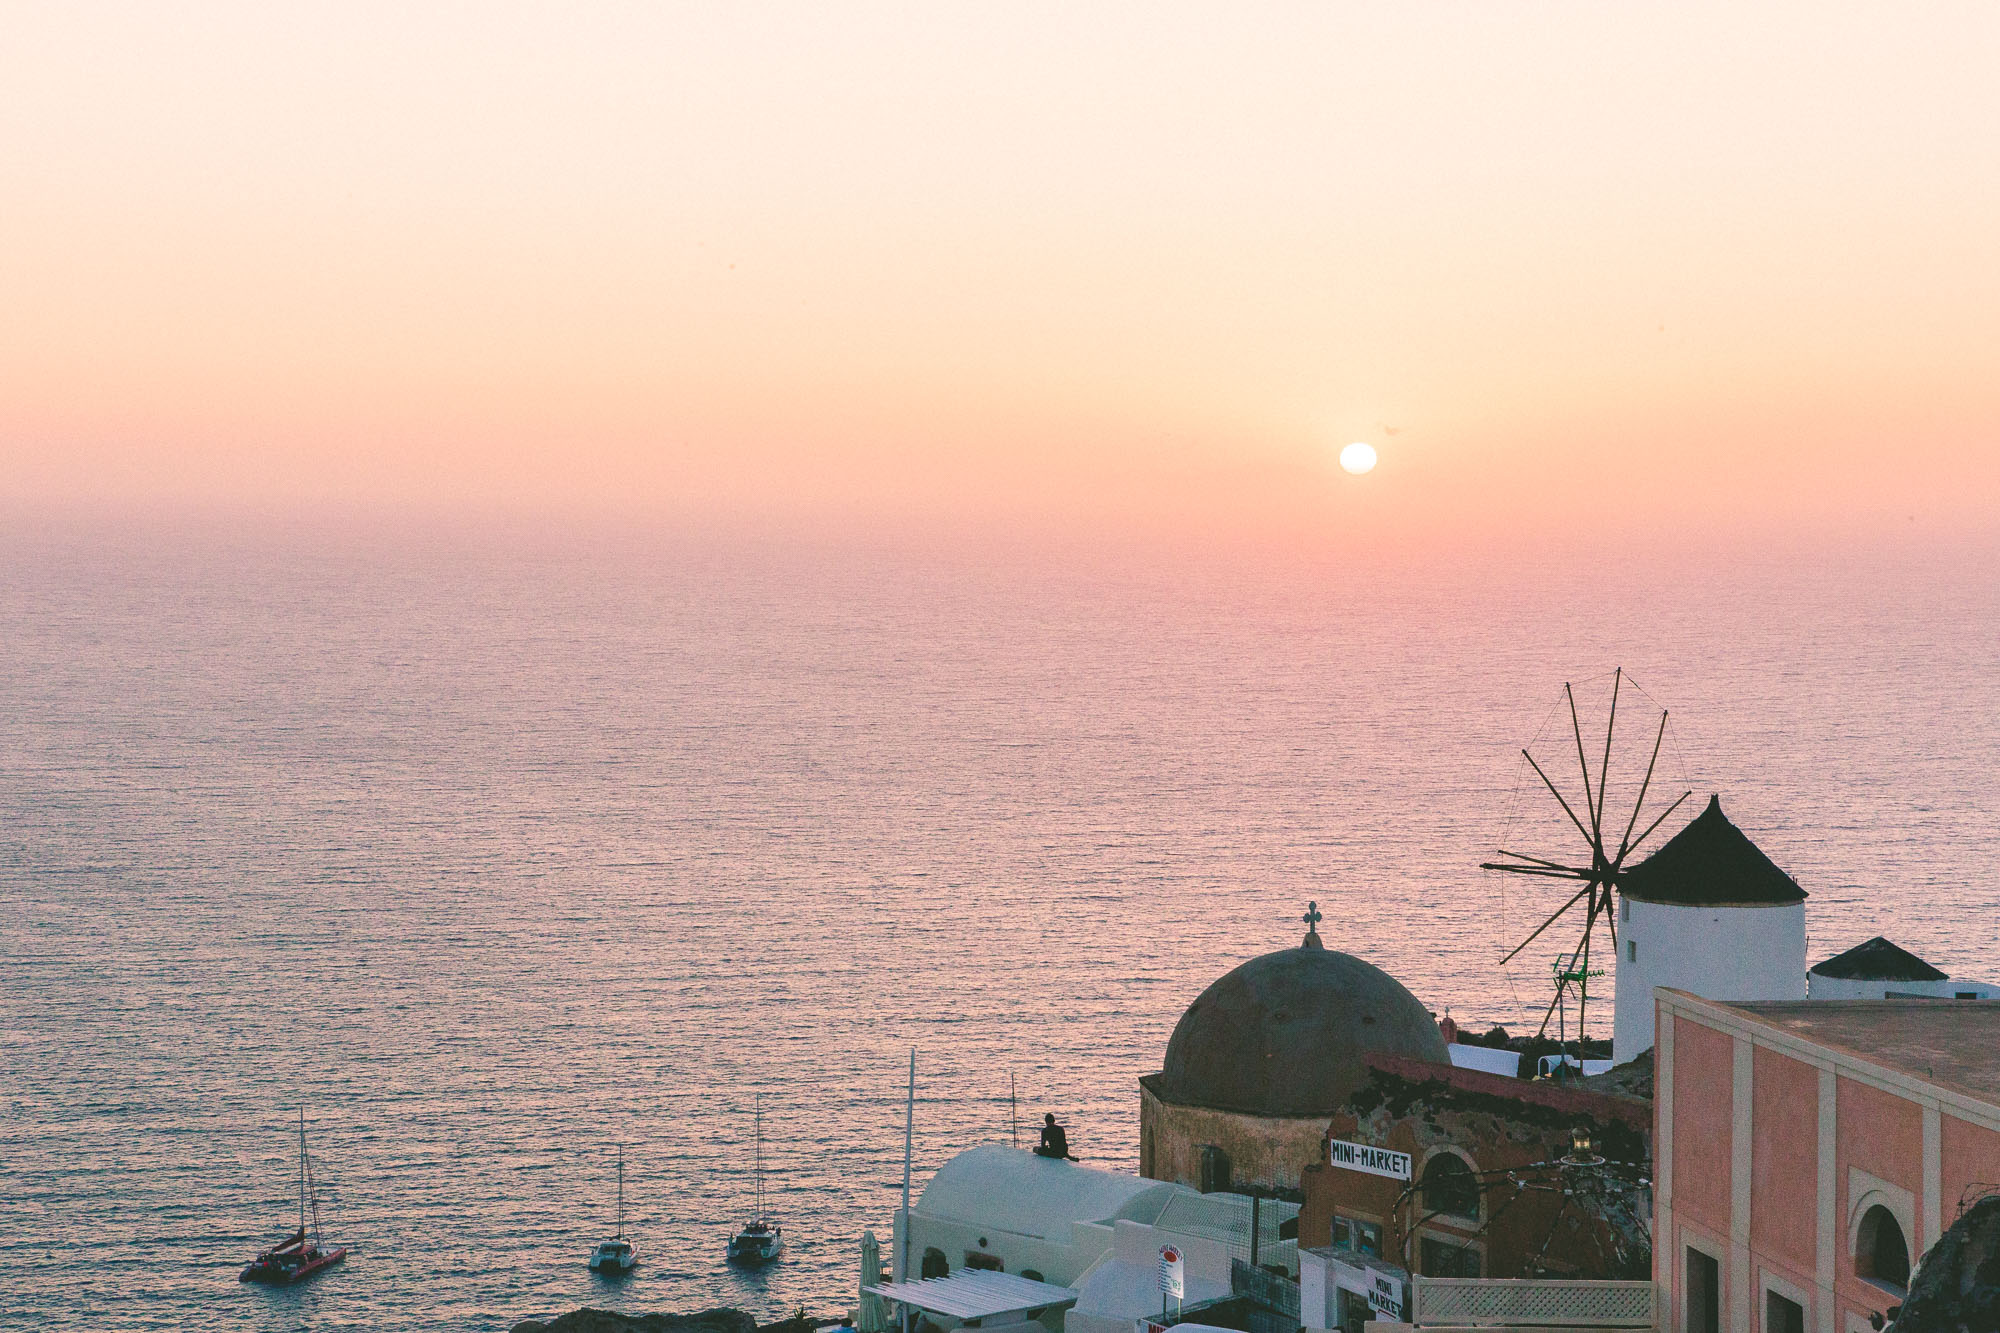 Sunset over Greek windmills in Santorini, Greece